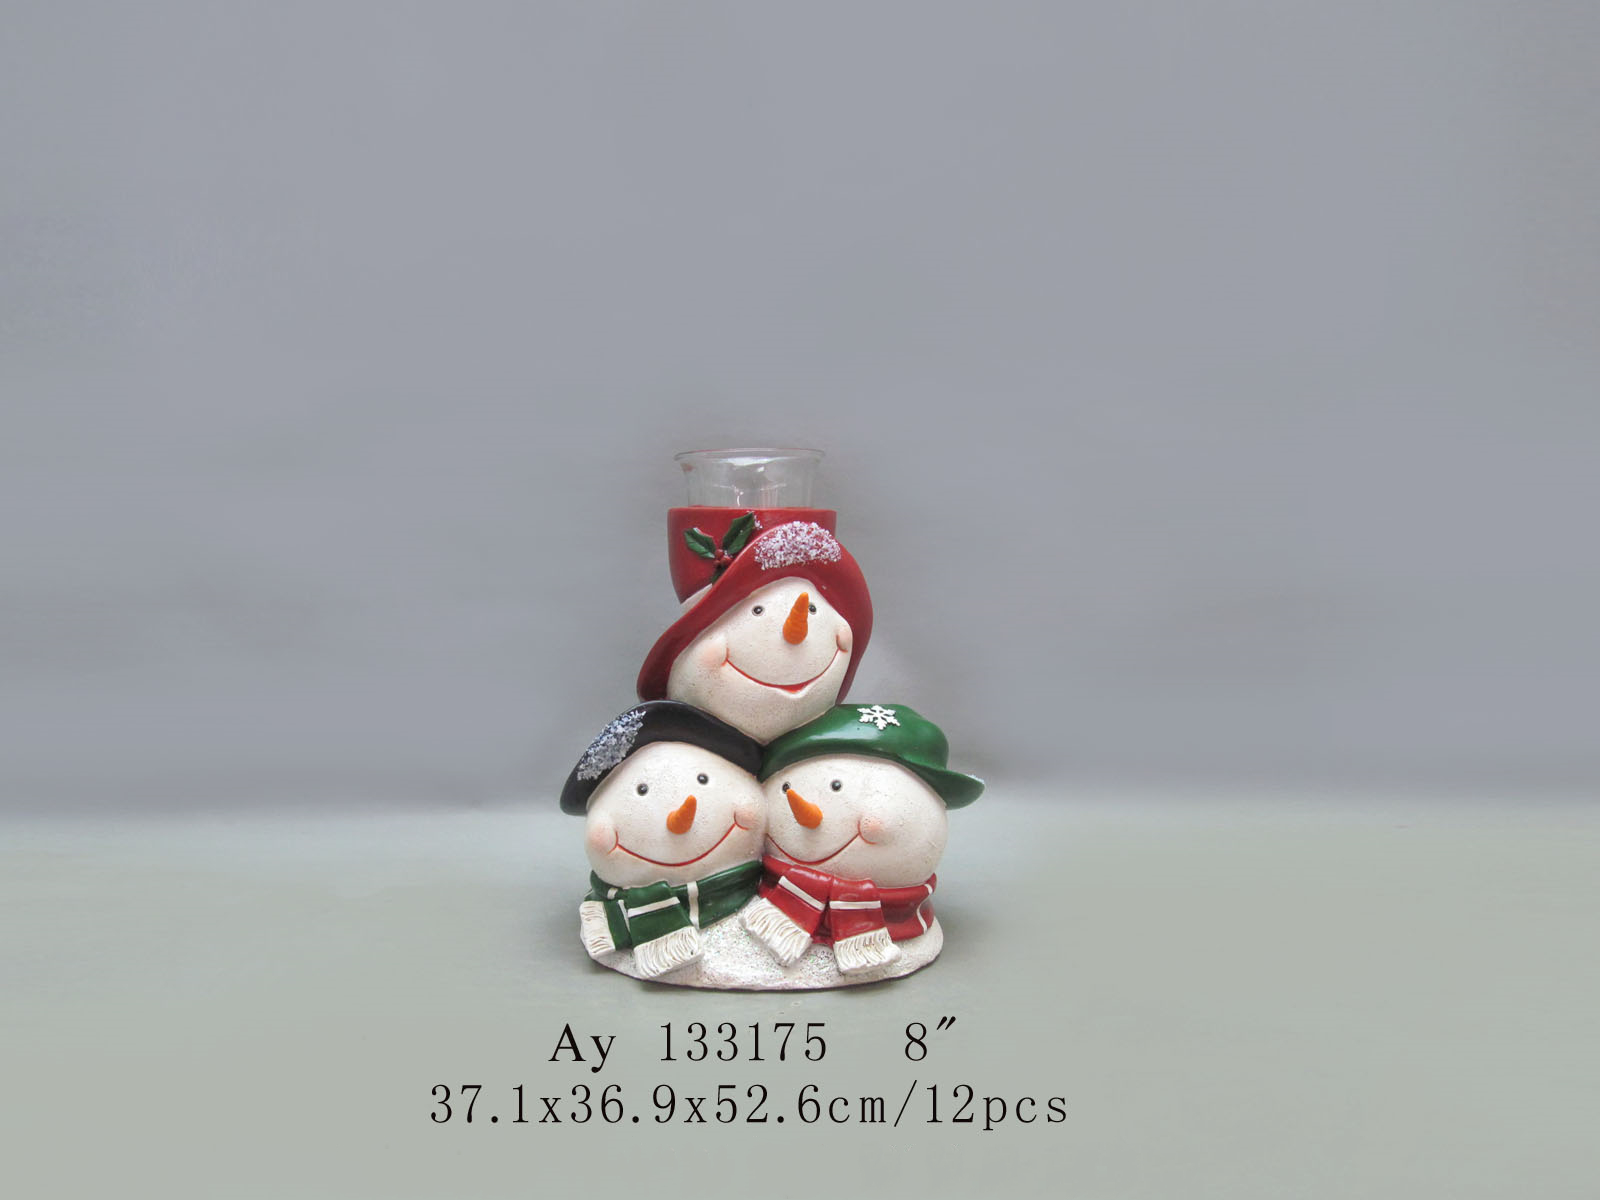 Christmas snowman and tree decoration with LED light for holiday decoration